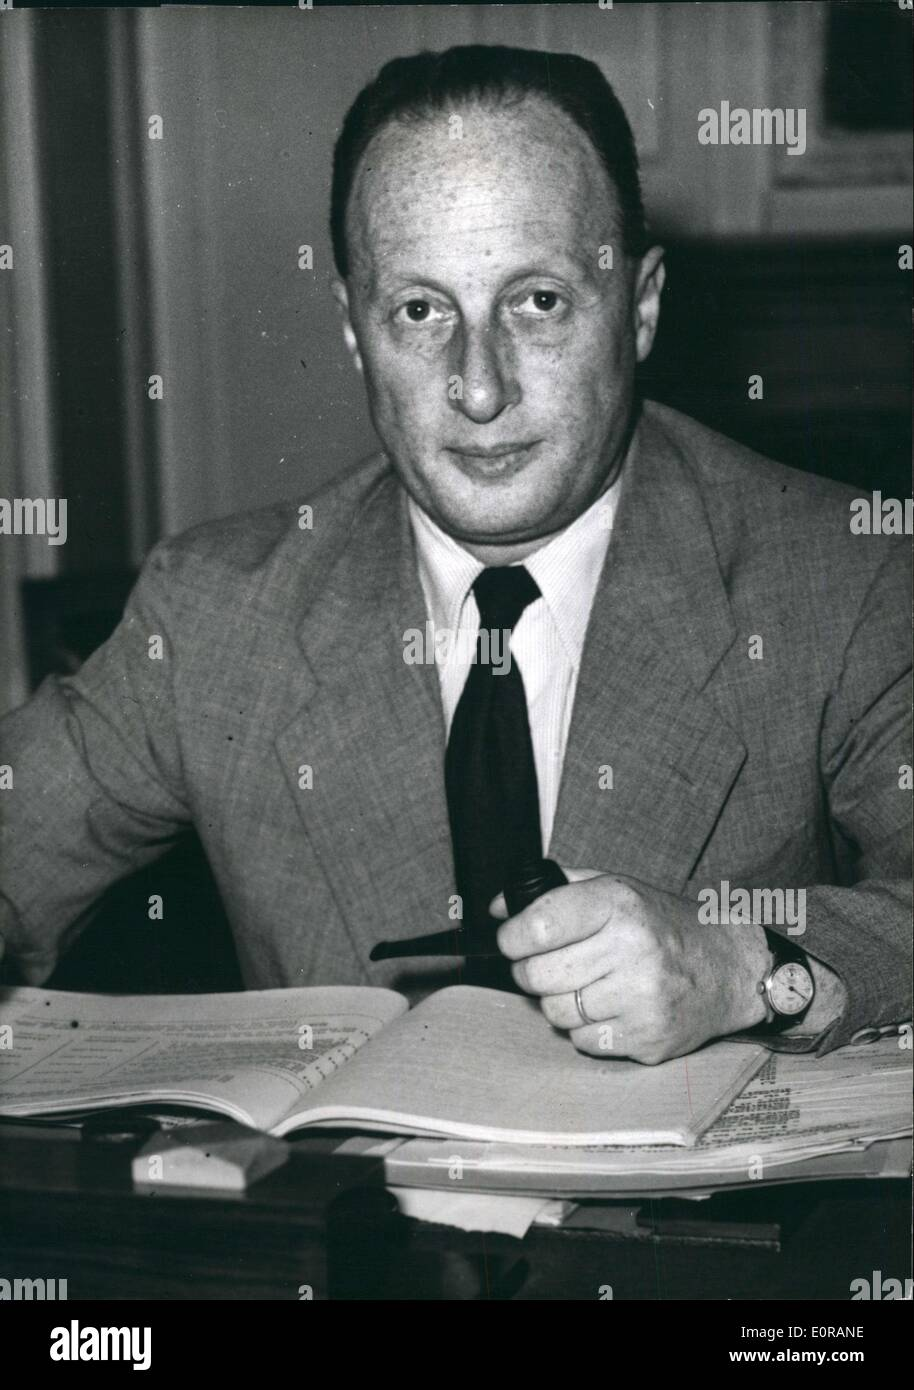 Oct. 06, 1958 - Mr Etienne Hirsch of the French government - Stock Image